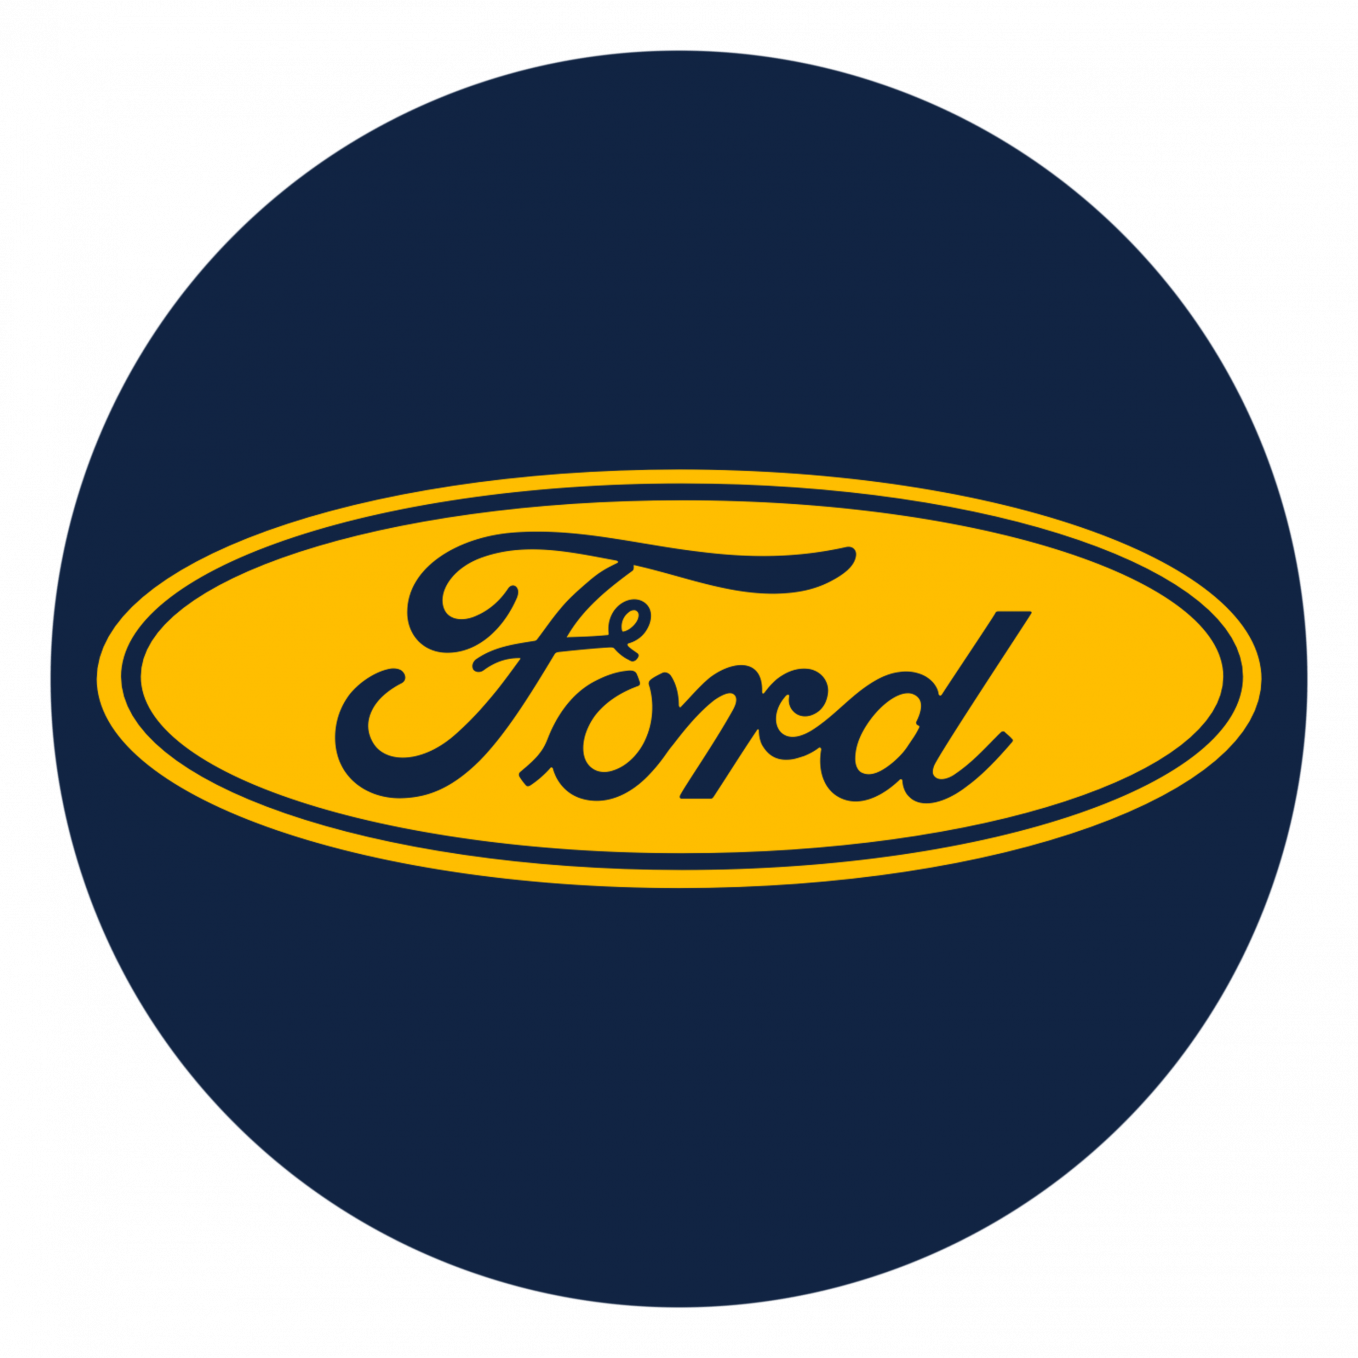 FORD-min-3.png